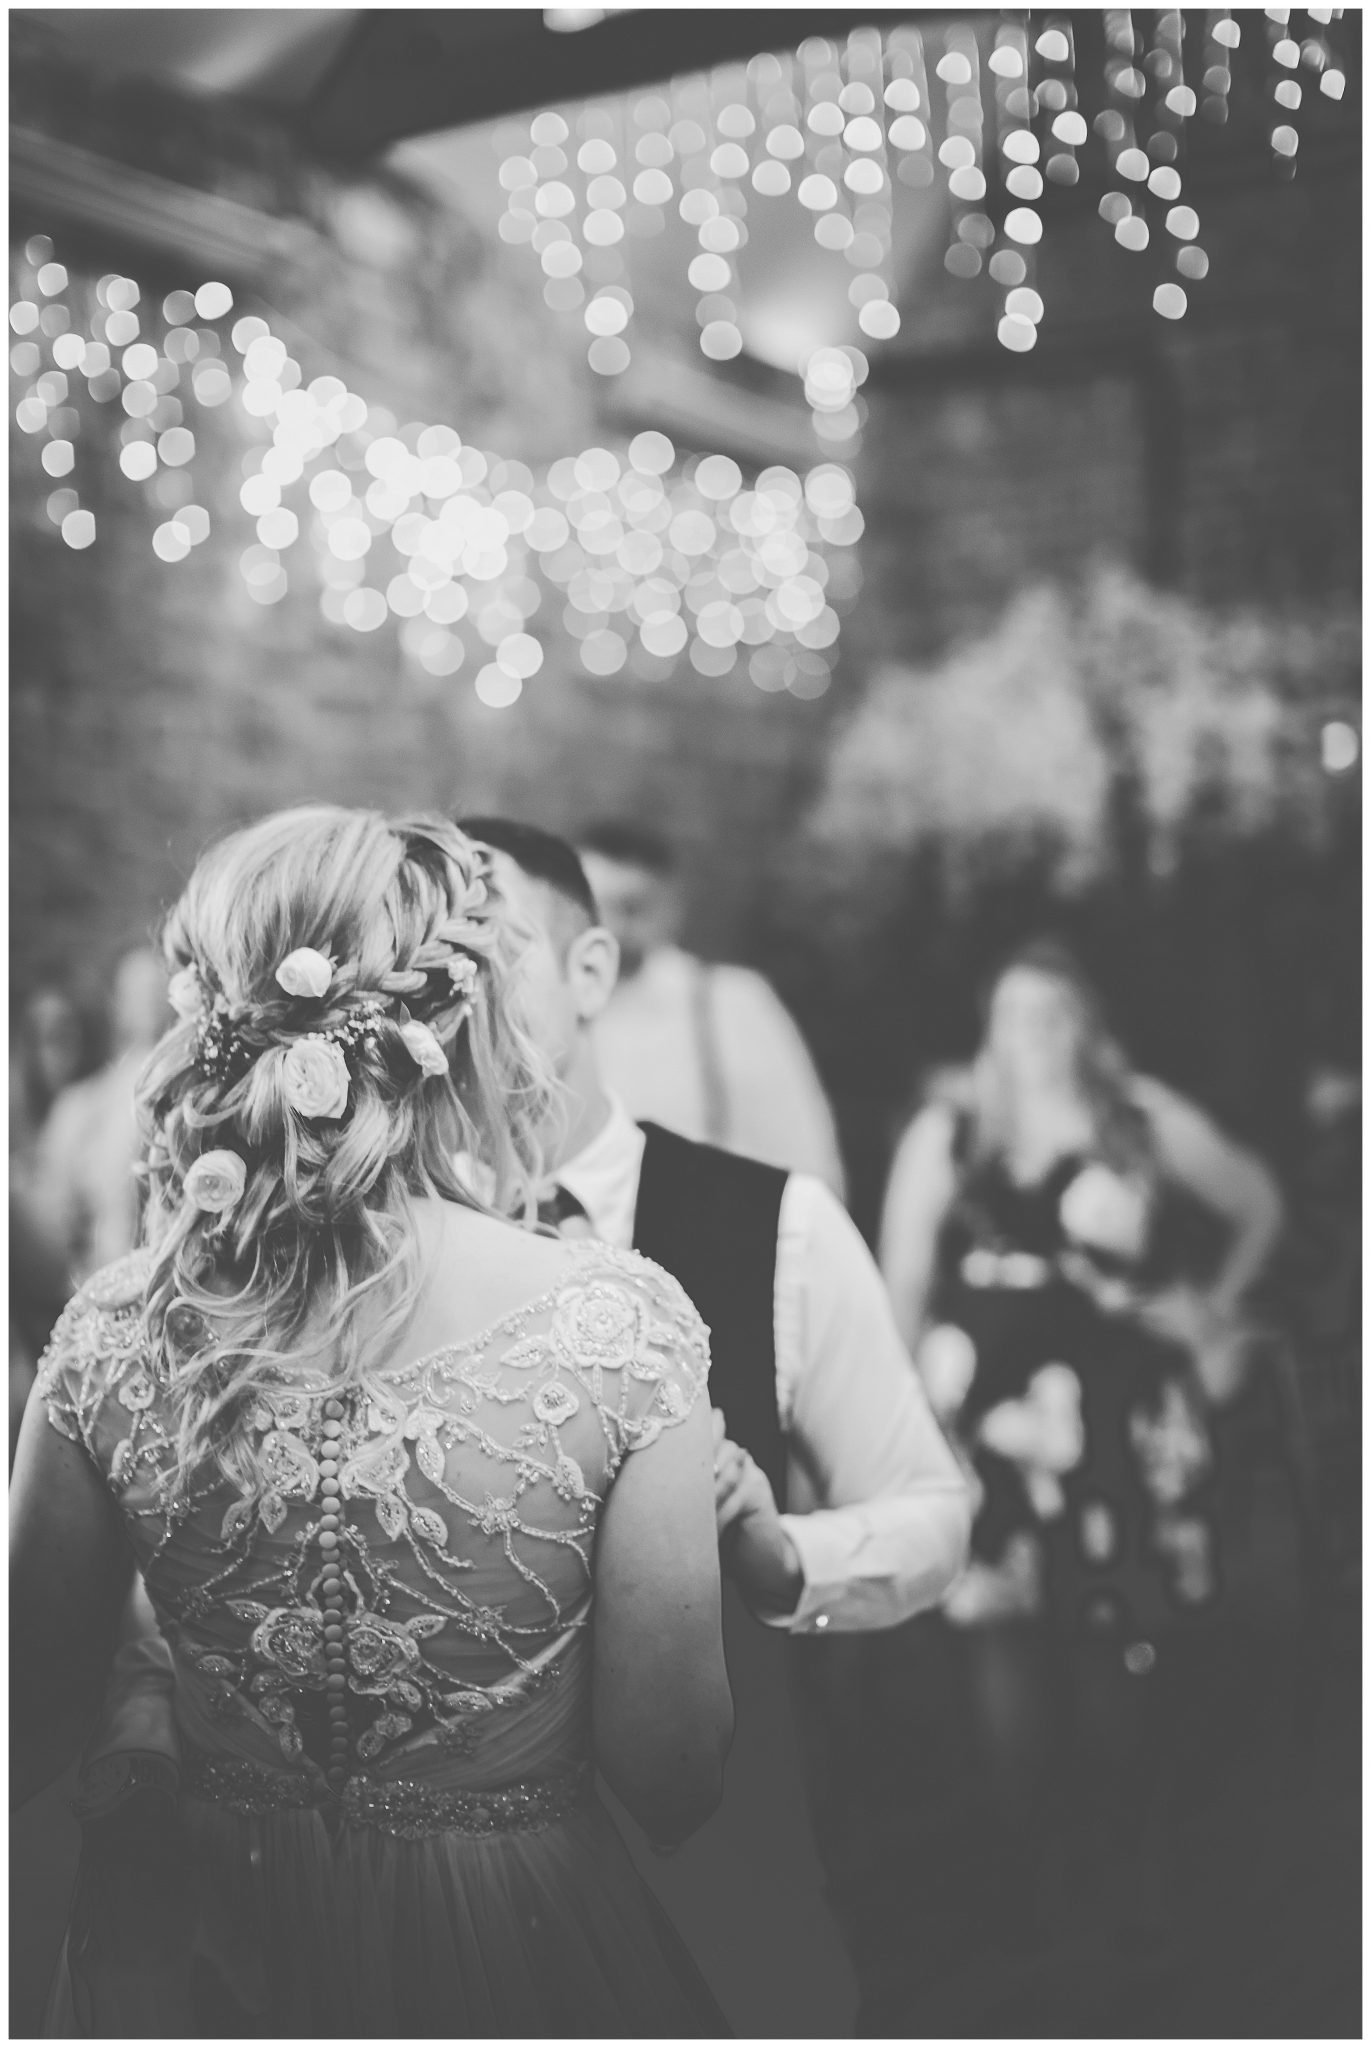 Black and white photo of the bride and groom dancing togehter